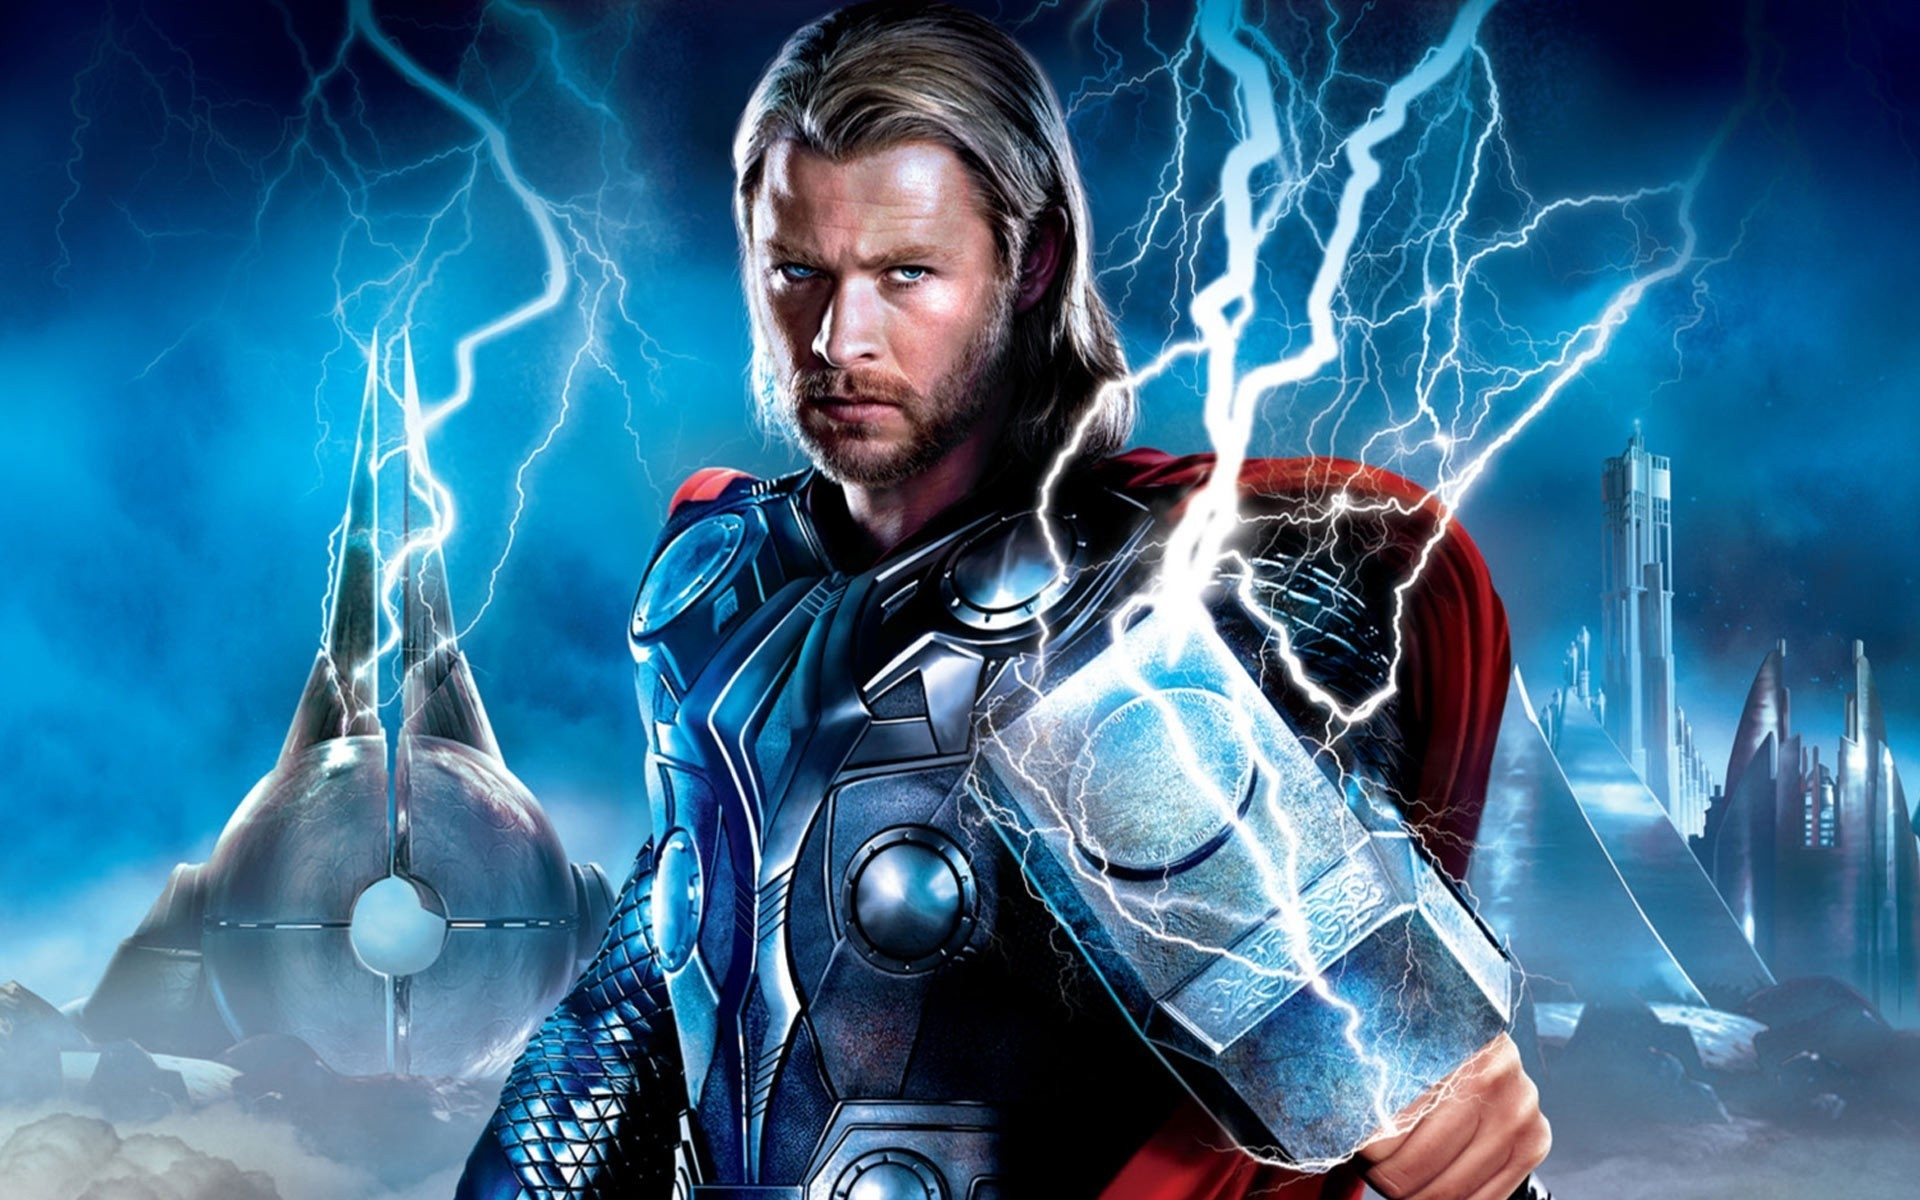 Wallpapers Cars Disney Hd Thor Wallpapers Free Download